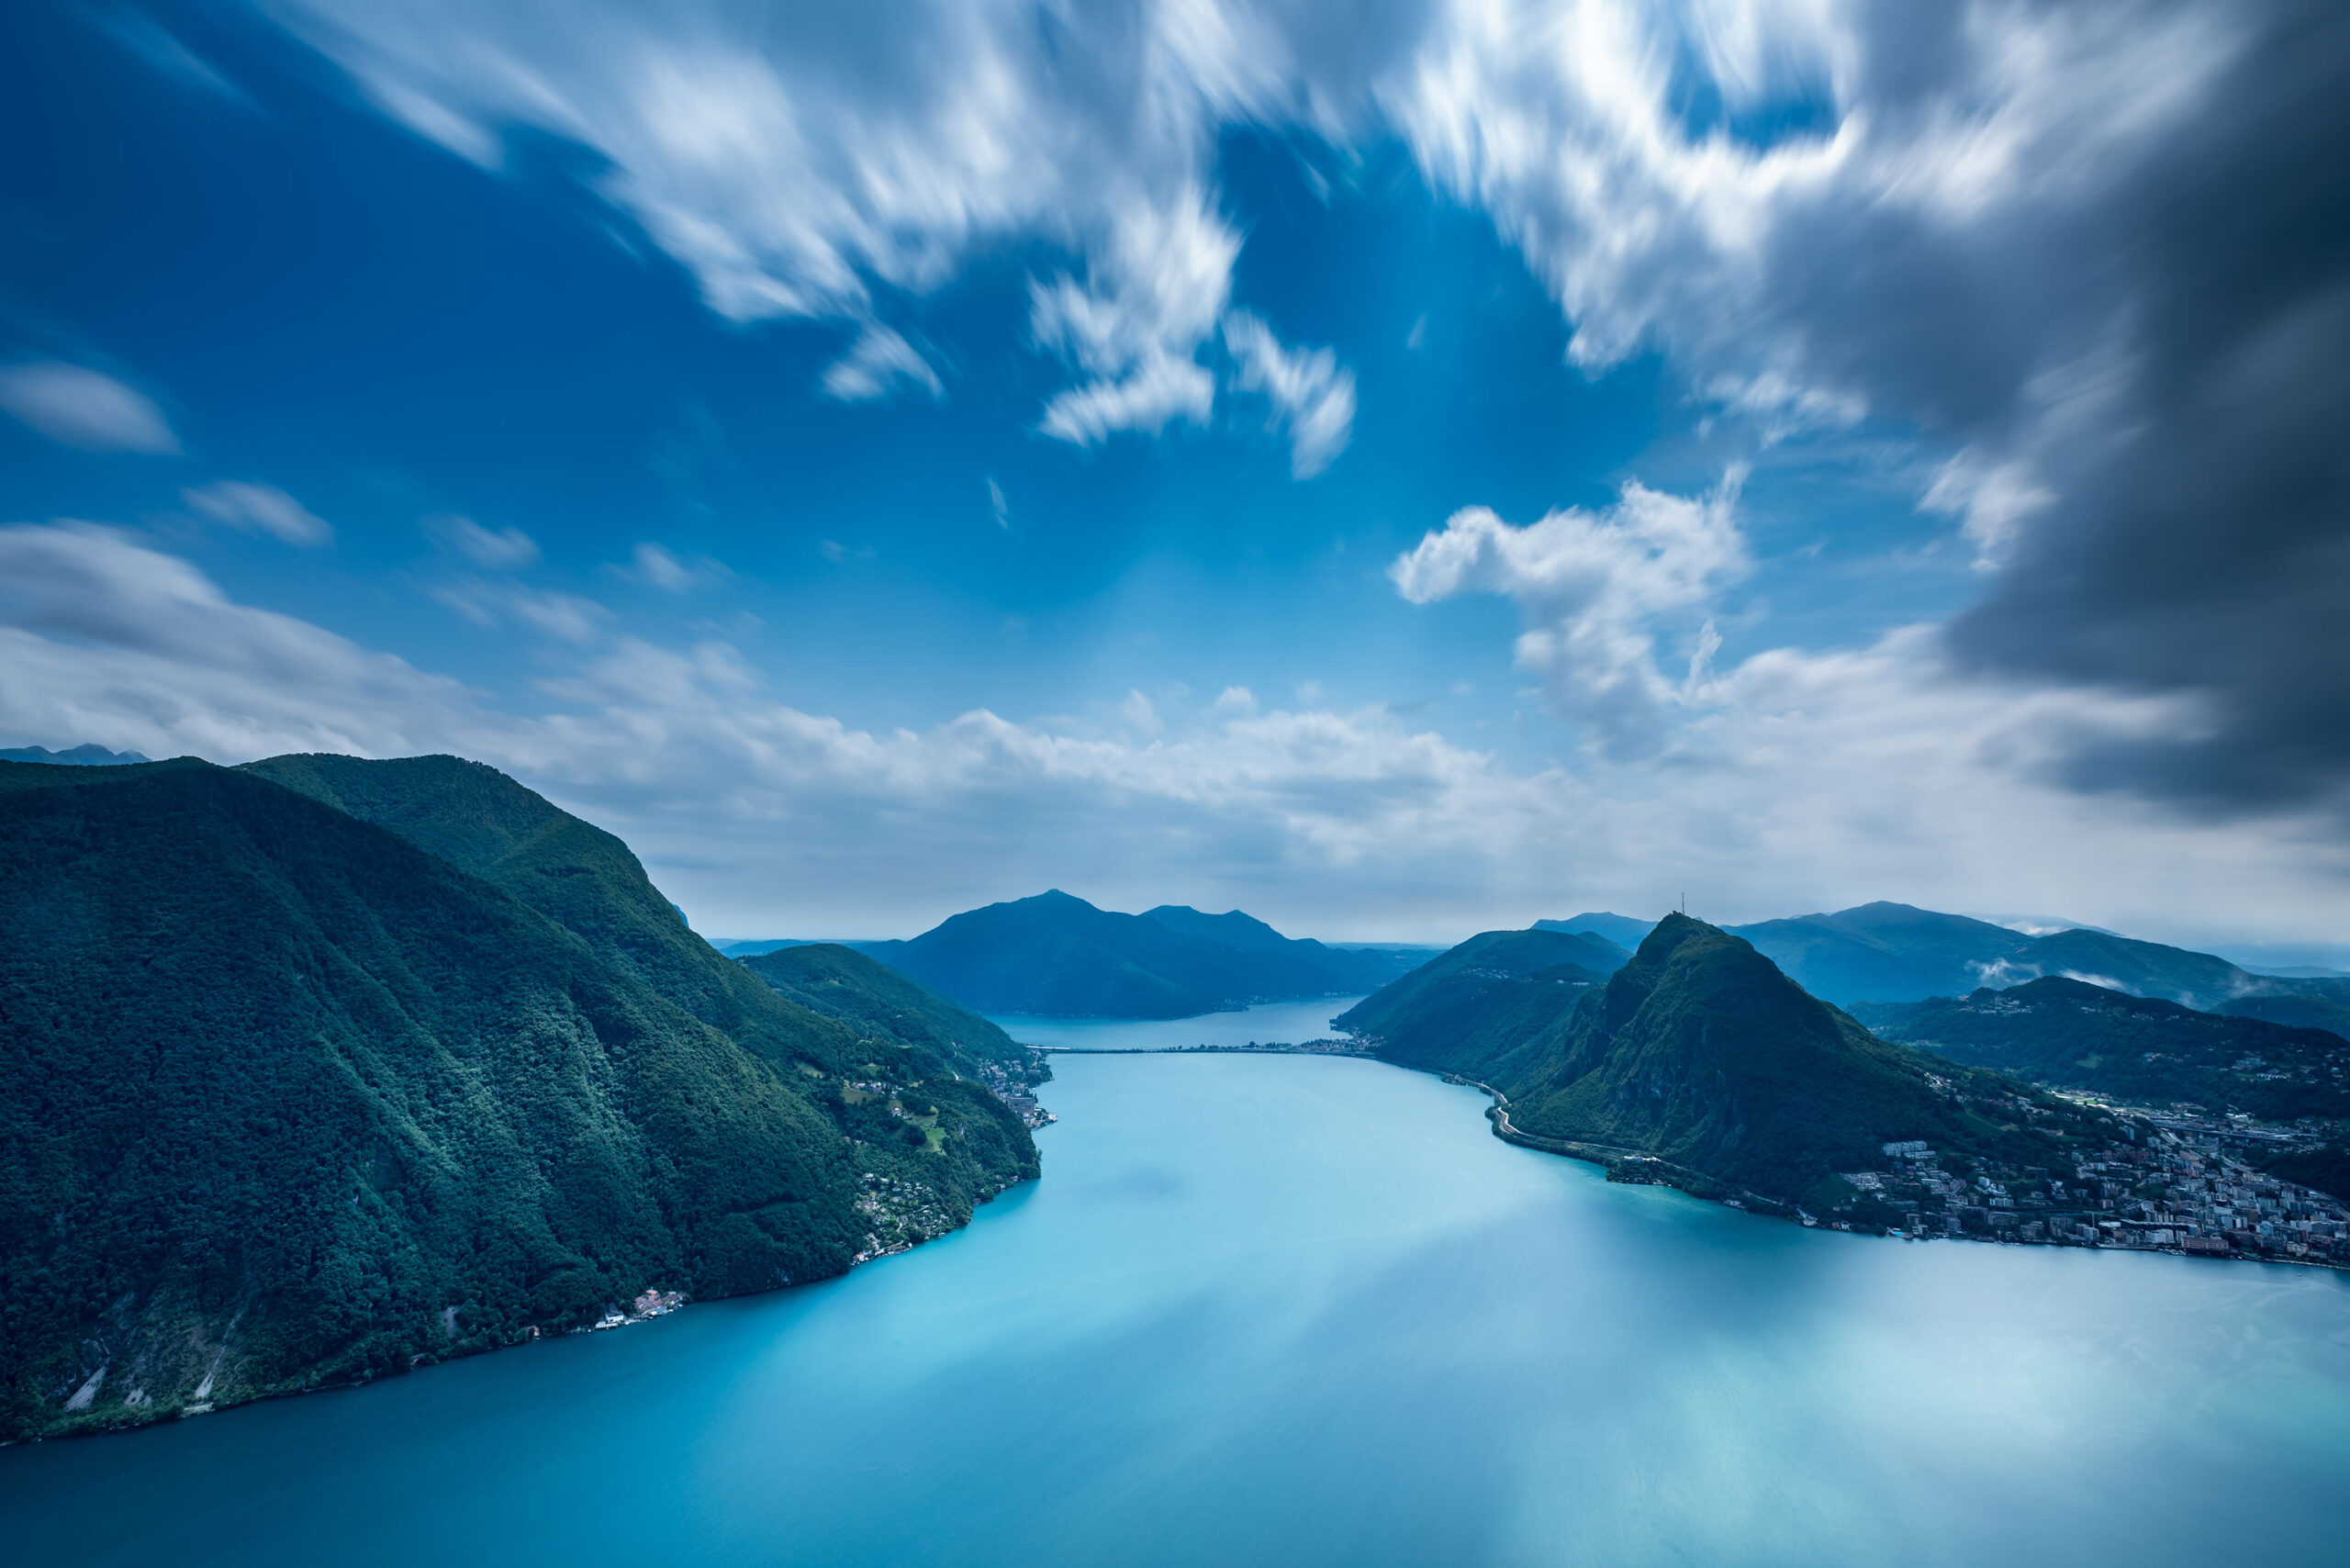 Long exposure photography of Lake Lugano from Monte Brè in Ticino, Switzerland.